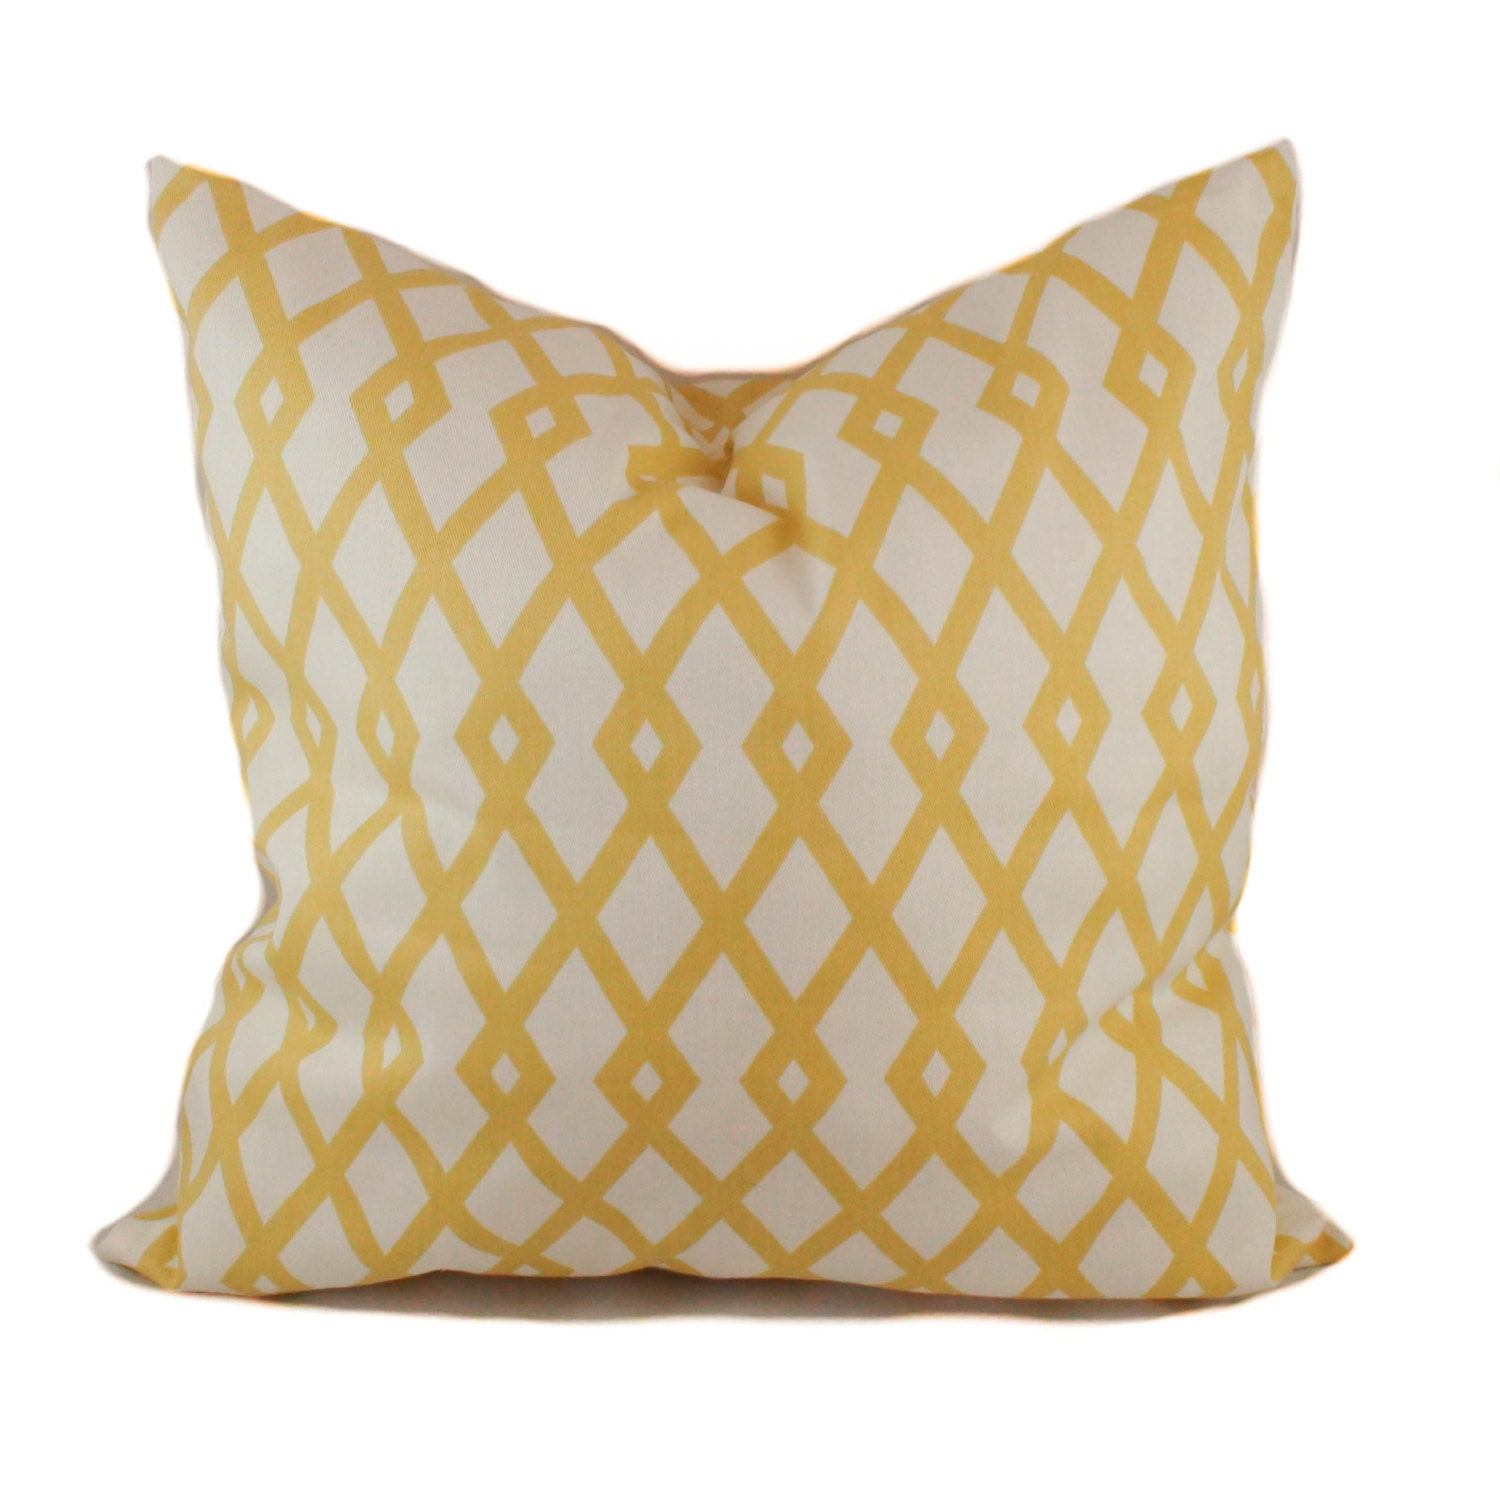 Yellow Decorative Pillows For Sofa : Yellow pillow cover Accent pillow Decorative pillow Sofa